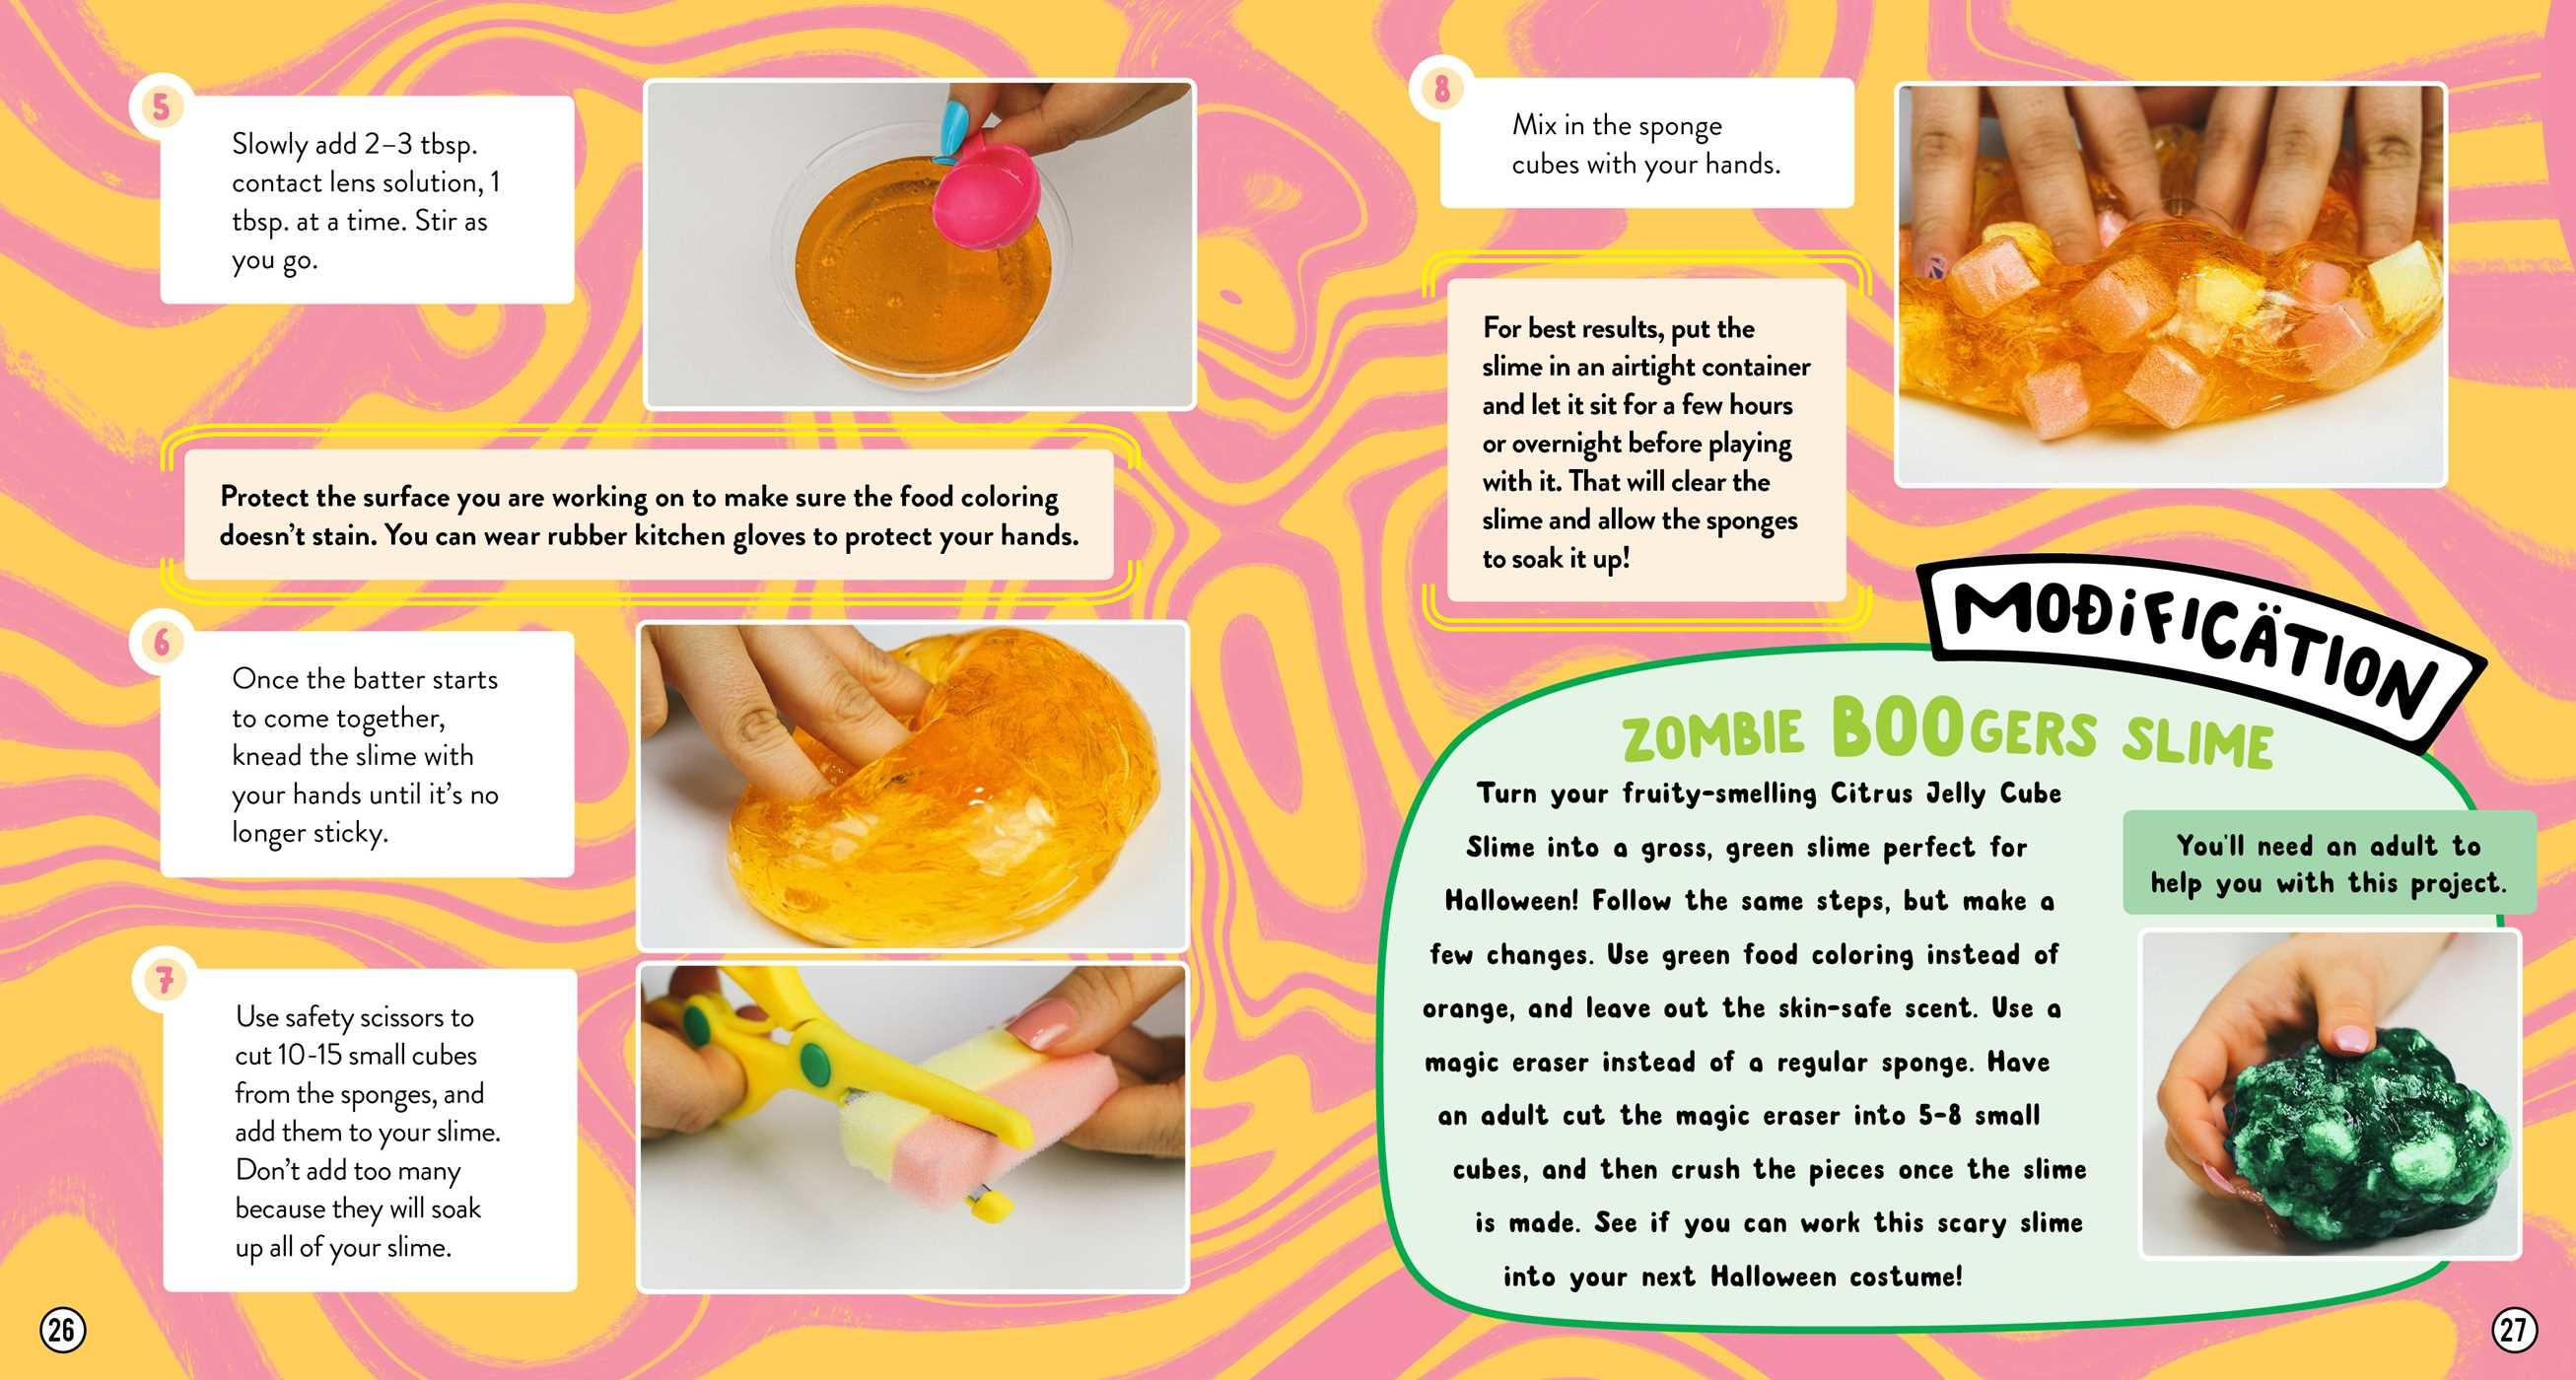 Karina garcias next level diy slime book by karina garcia karina garcia s next level diy slime 978149980799802 ccuart Image collections